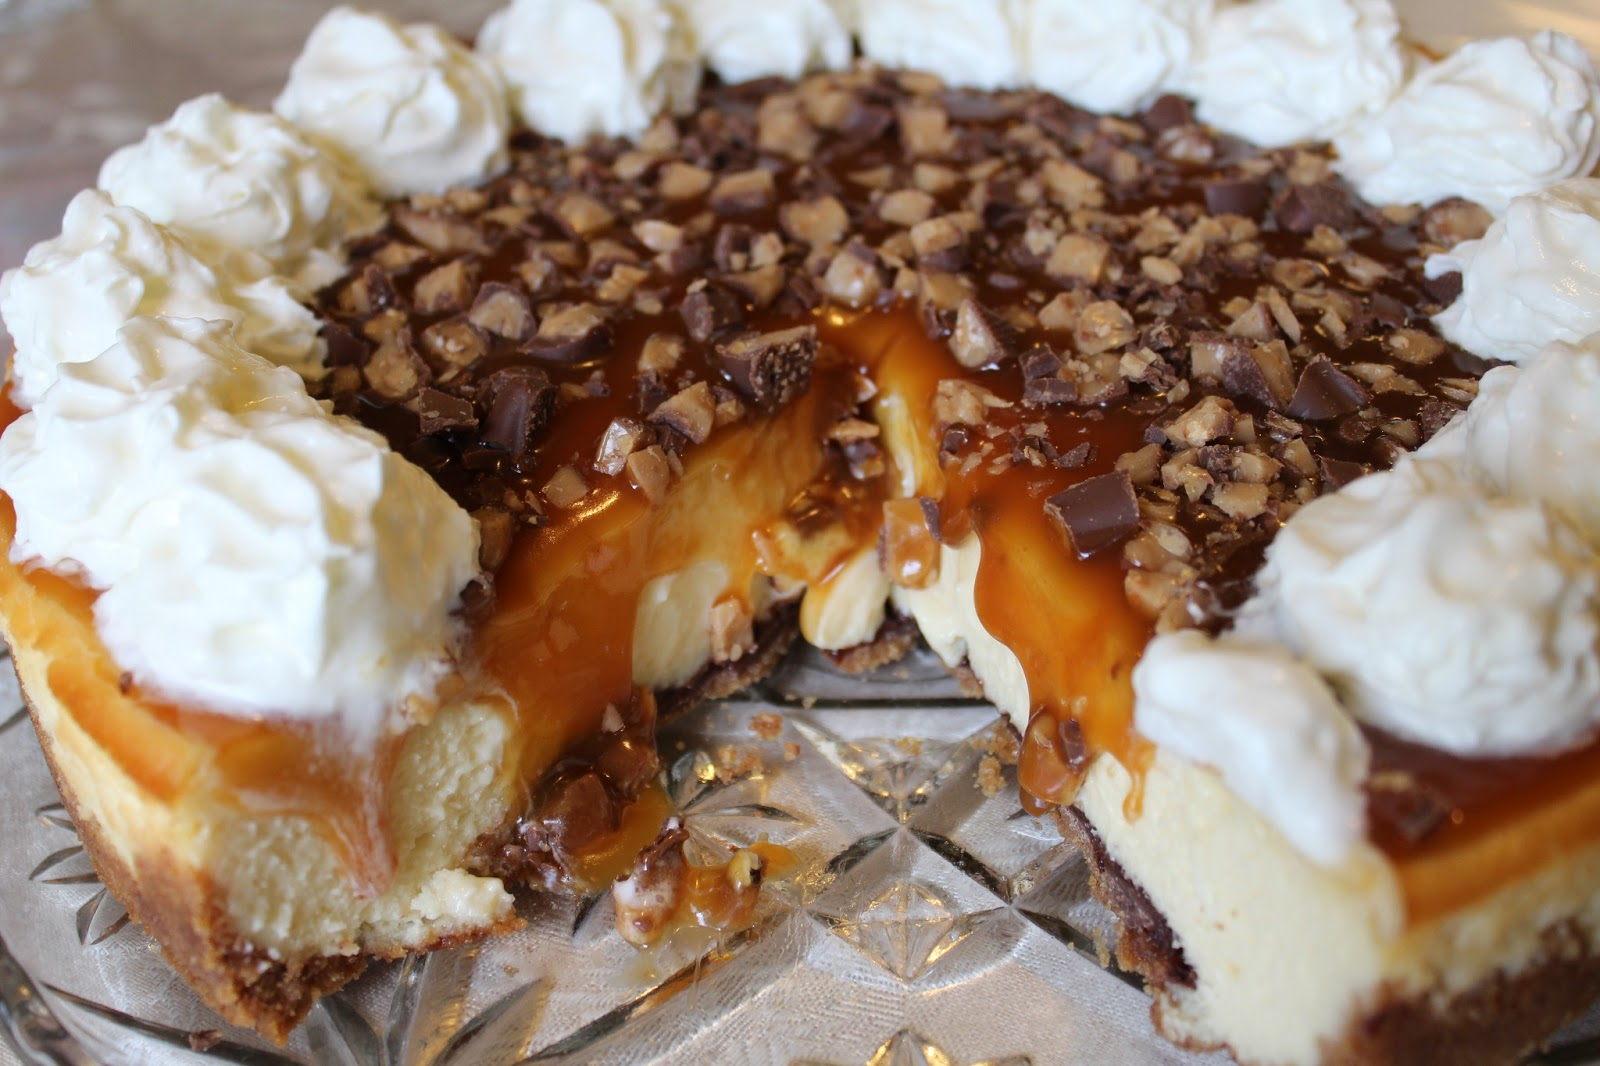 Blog As You Bake Caramel Toffee Crunch Cheesecake